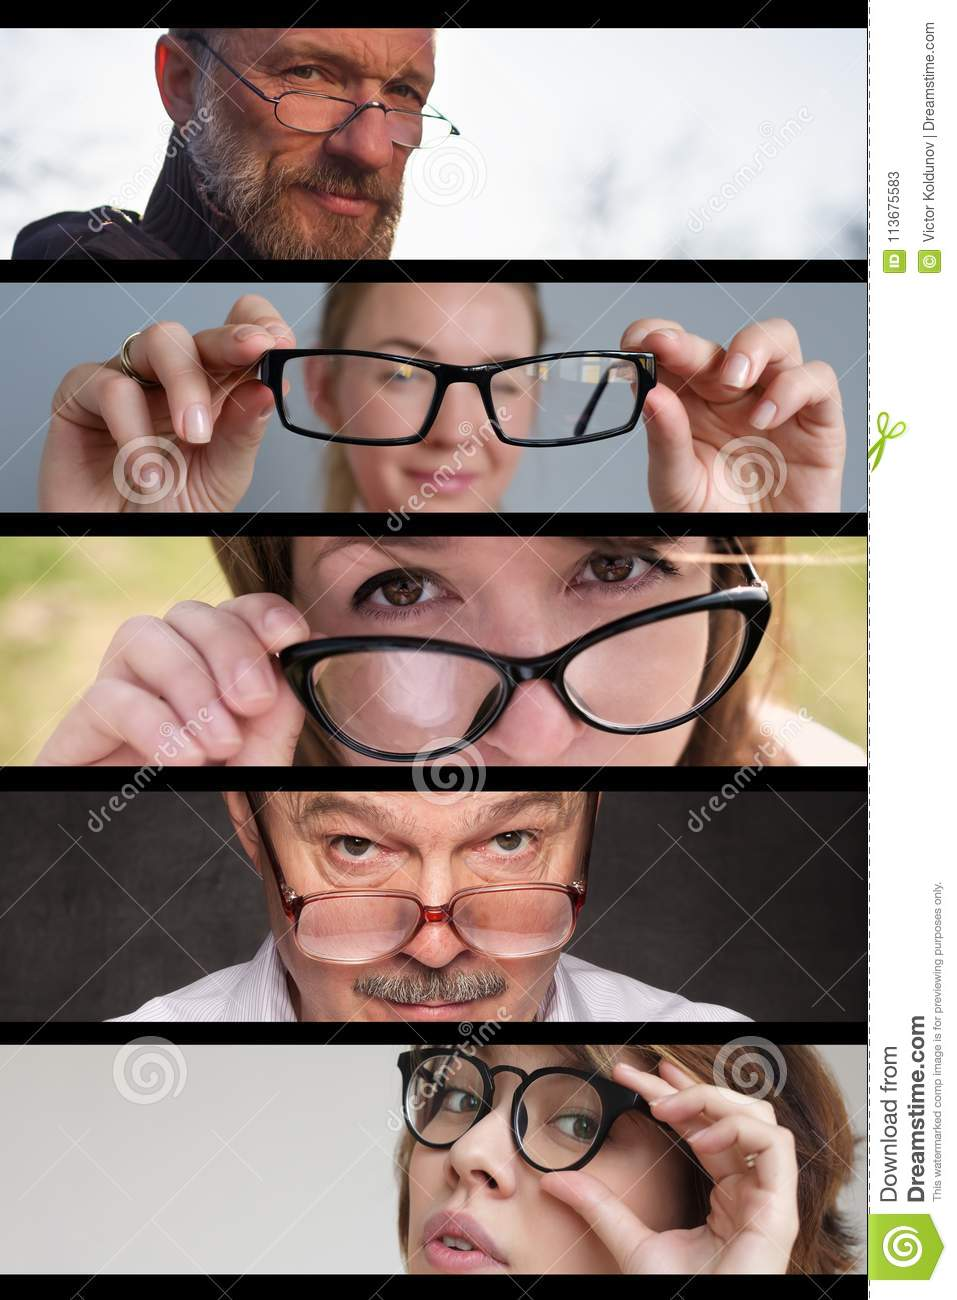 Set of photos of people men and women with glasses. Concept of having problems with eyes